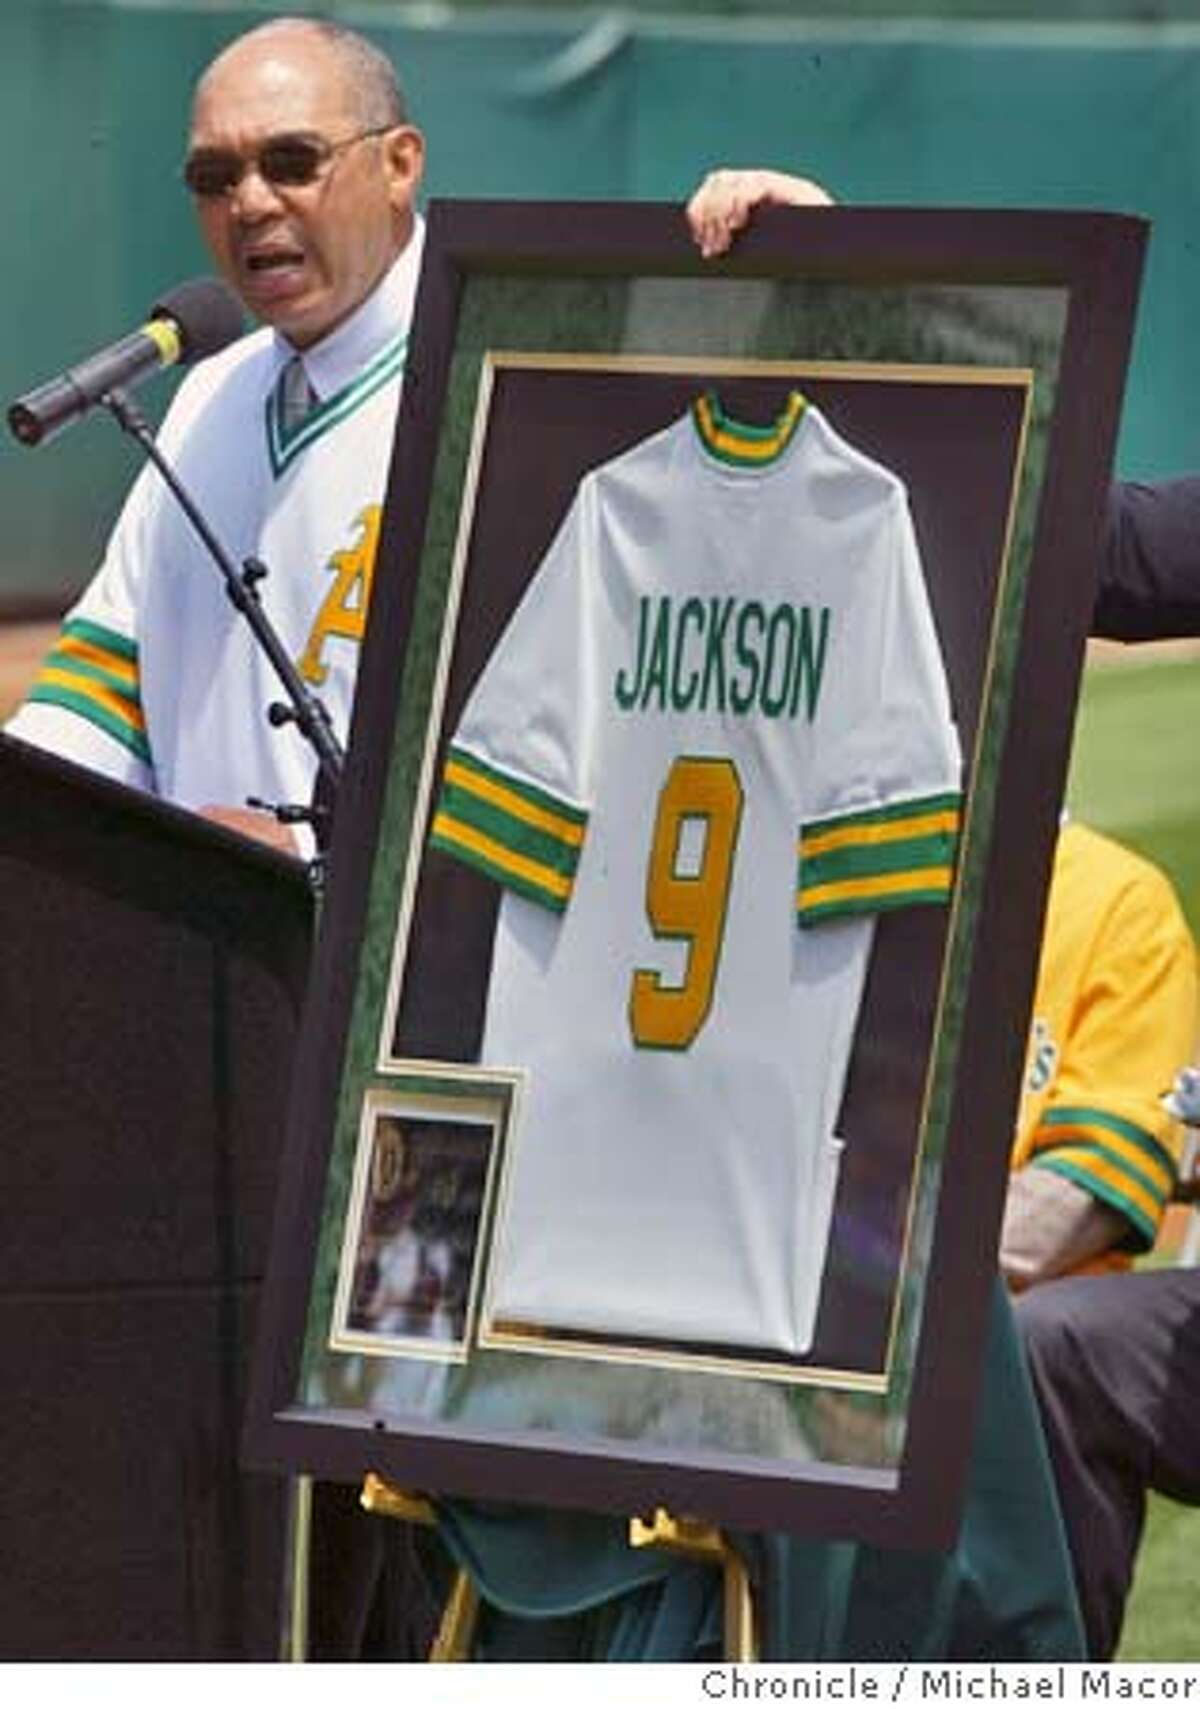 athletics053_mac.jpg Reggie Jackson became the third Oakland Athletic to have his number retired. Reggie speaks to the crowd as a commemorative jersey is presented to him. The Oakland Athletics vs. Kansas City Royals. event on 5/22/04 in Oakland Michael Macor / San Francisco Chronicle Mandatory Credit For Photographer and SF Chronicle/ - Magazines Out